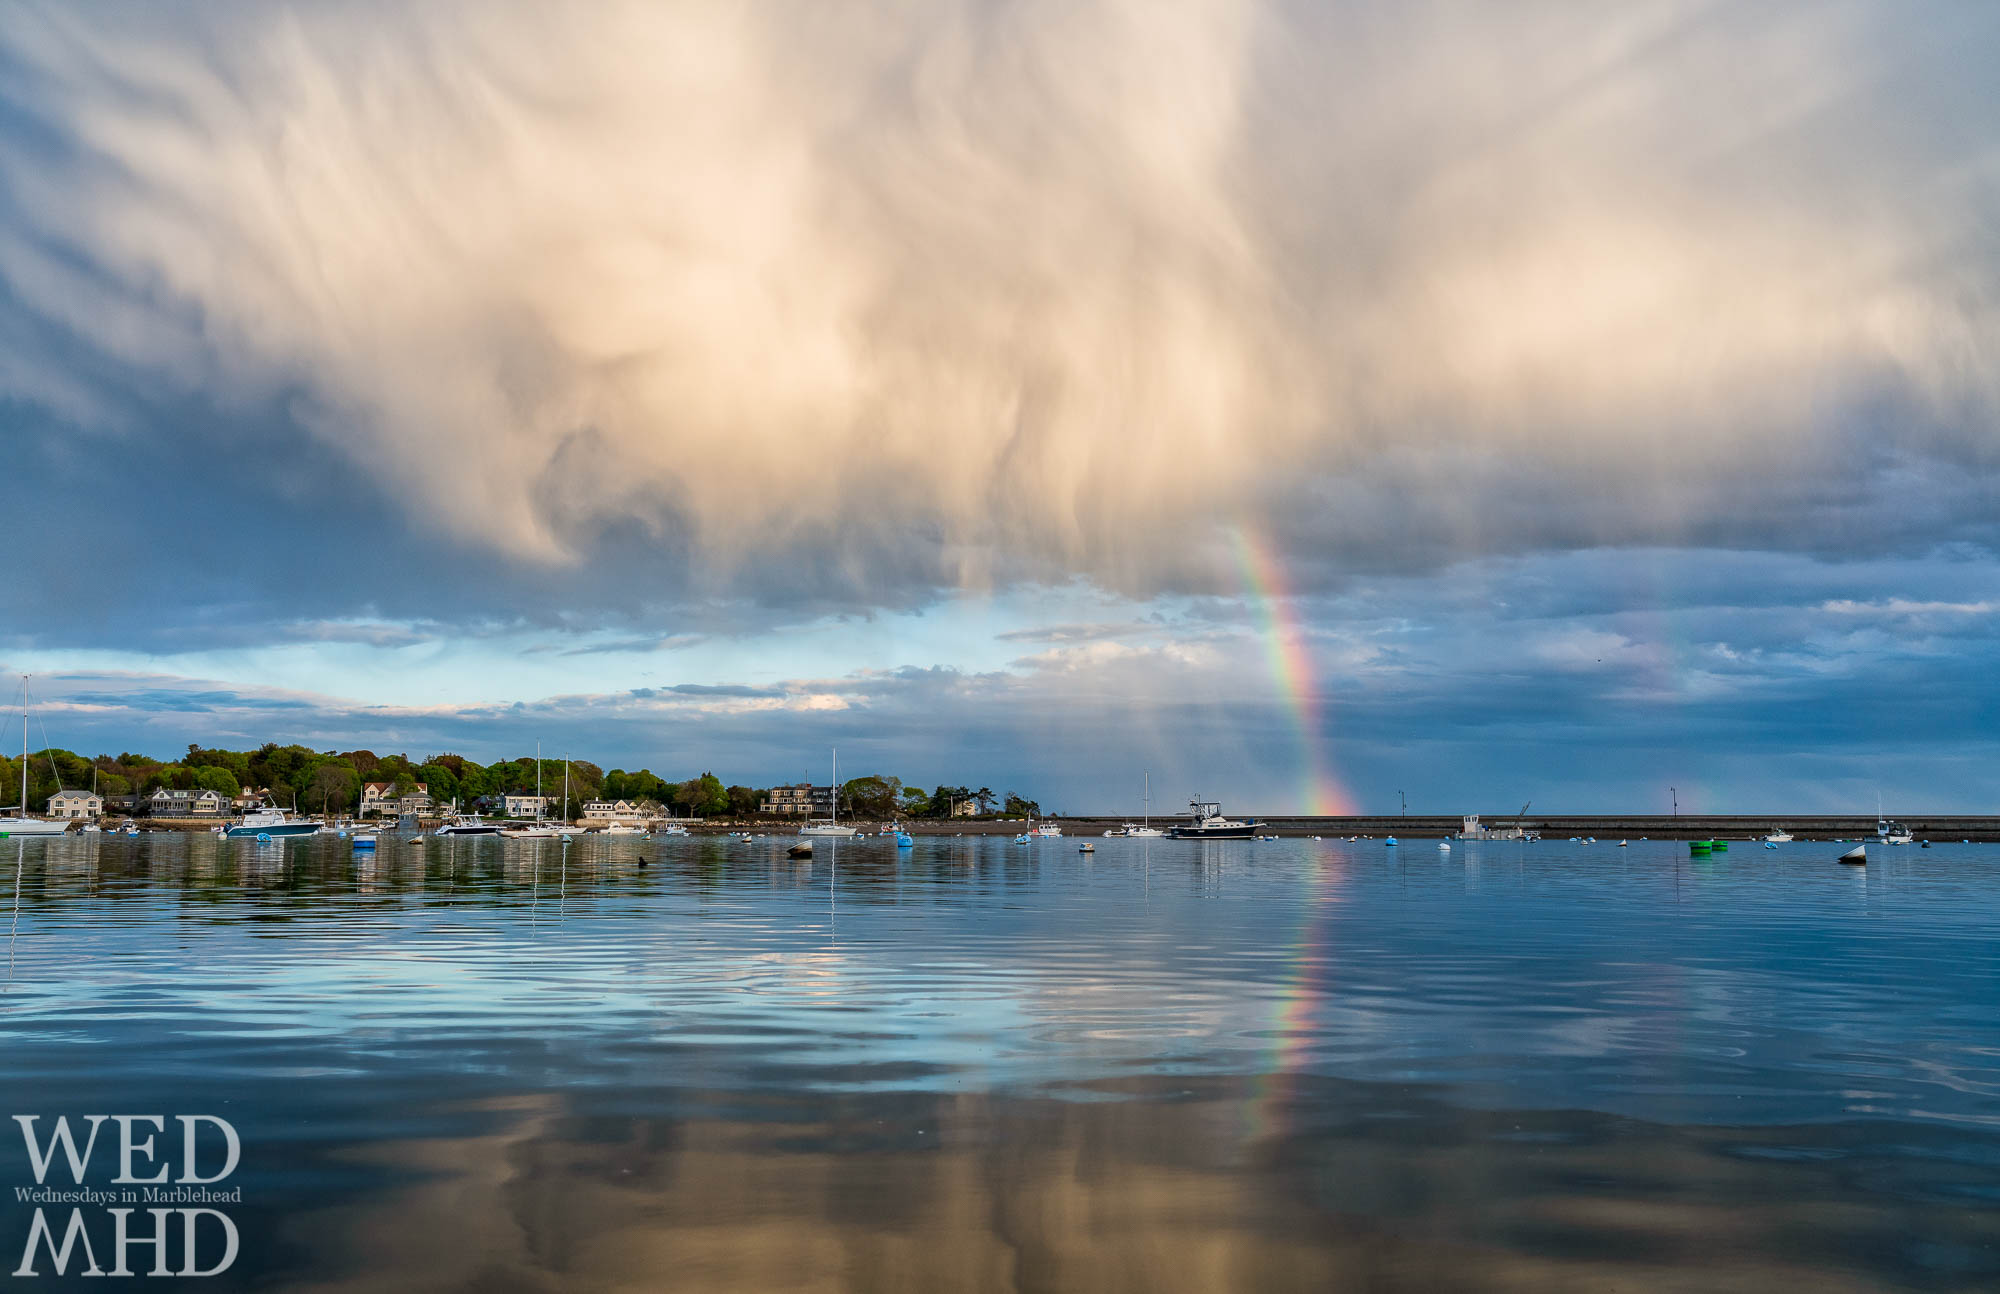 A hint of a double rainbow and great clouds make for a memorable scene in this low angled shot meant to accentuate the reflections